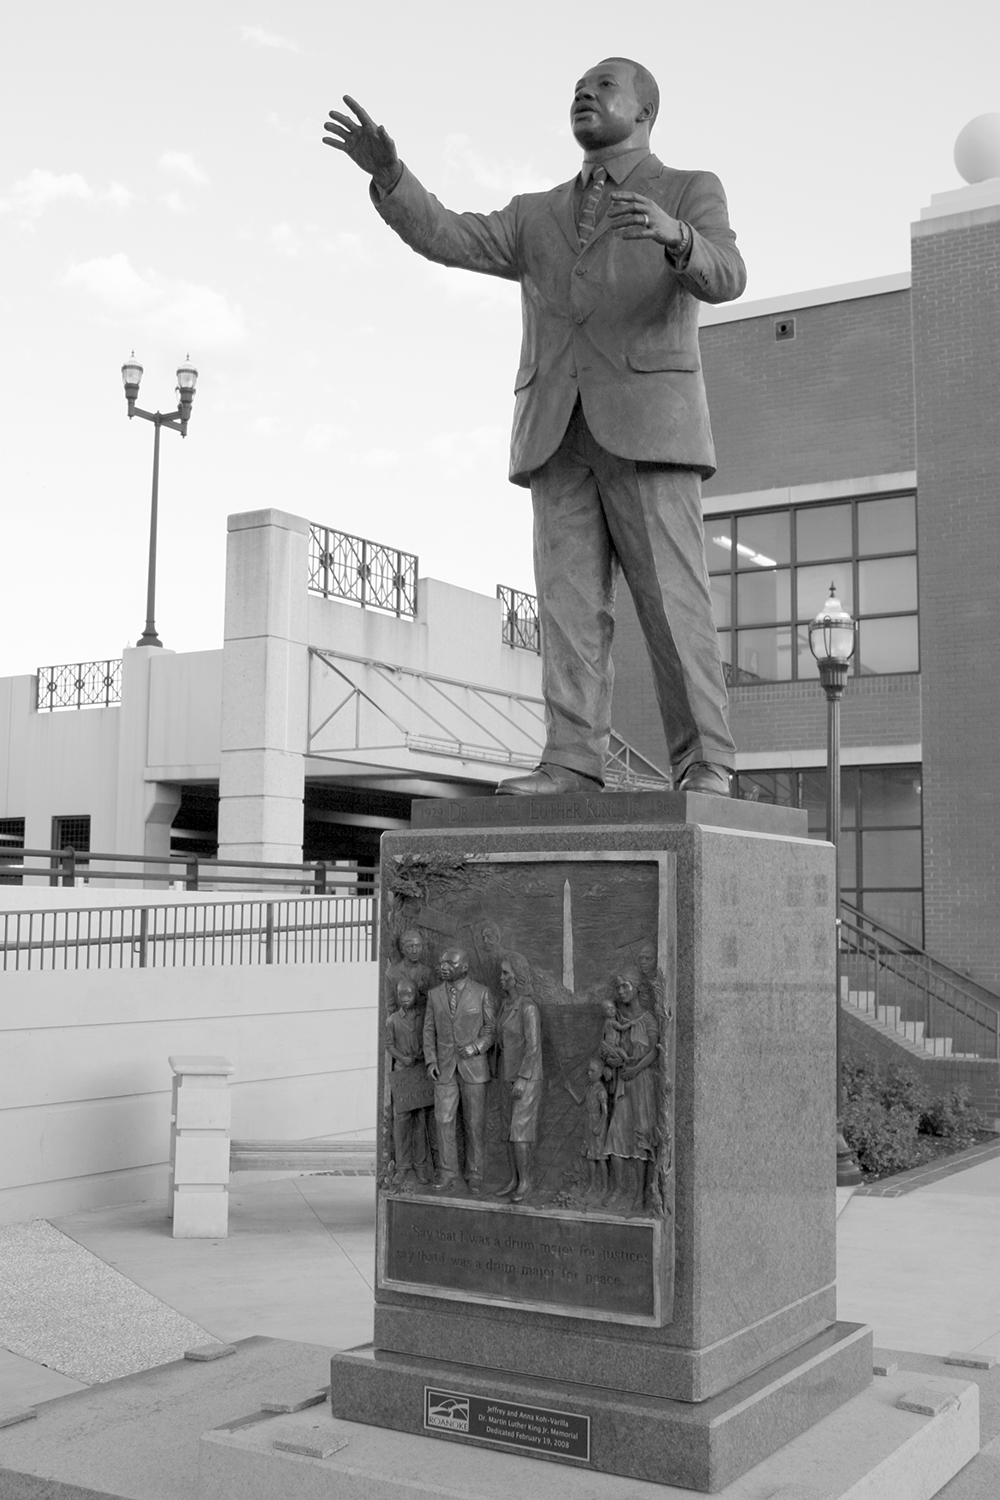 Martin Luther King Jr. statue, Roanoke, VA, 2011. Photograph by Brent Moore. Flickr (CC BY-NC 2.0).